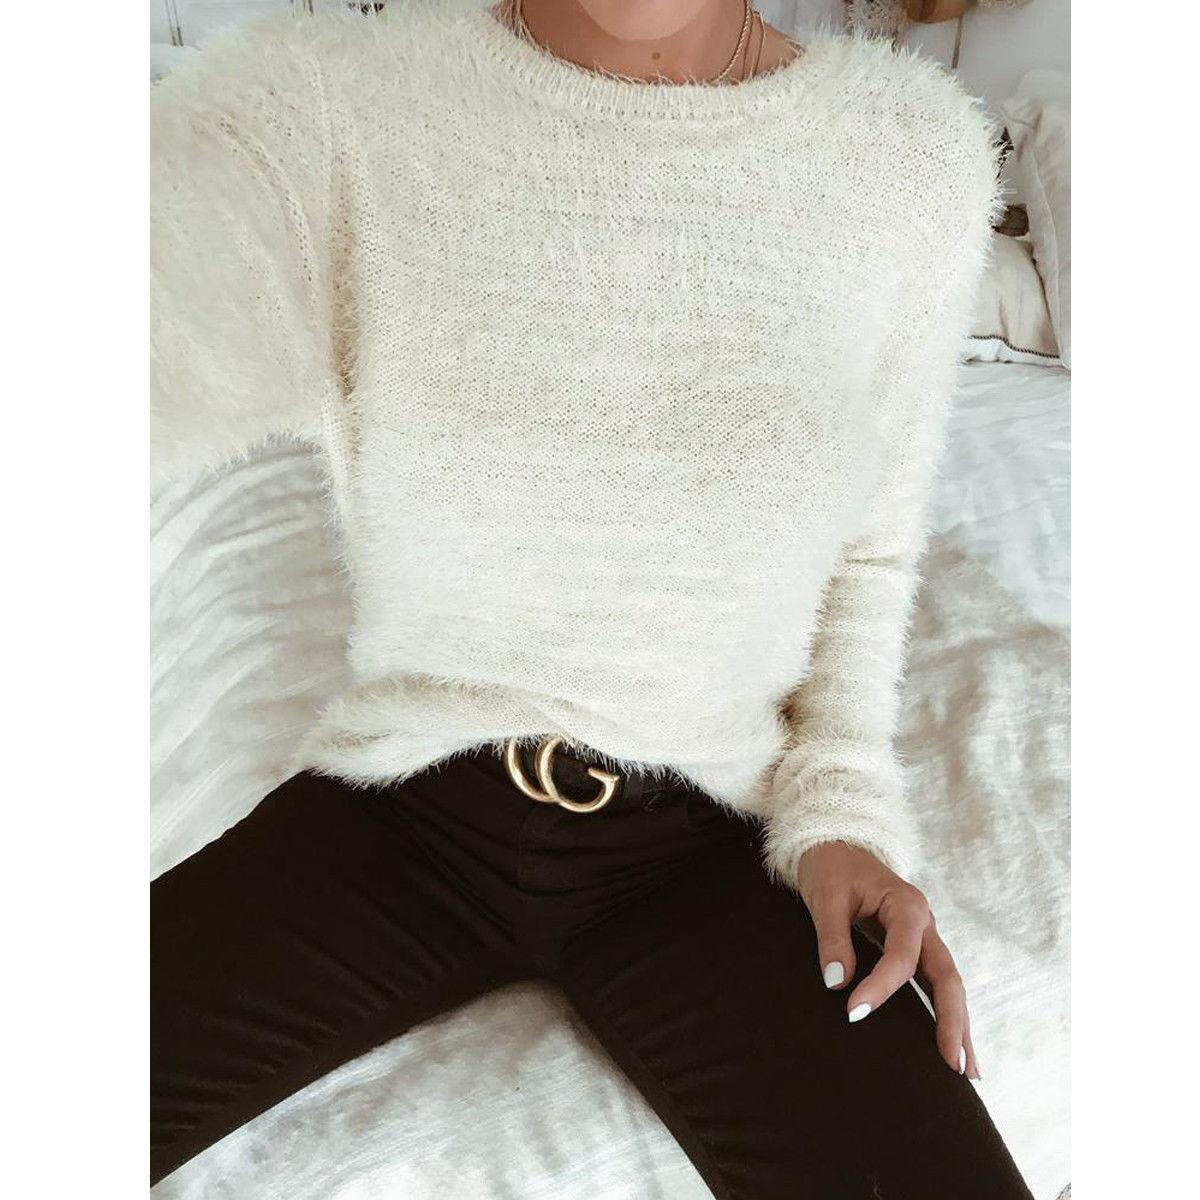 912a4195f12 2018 New Autumn Winter Women Casual Sweaters 2 Style Long Sleeve Pullover  Fur Solid Slim Warm Sweaters Tops Online with  30.35 Piece on Qinfeng10 s  Store ...